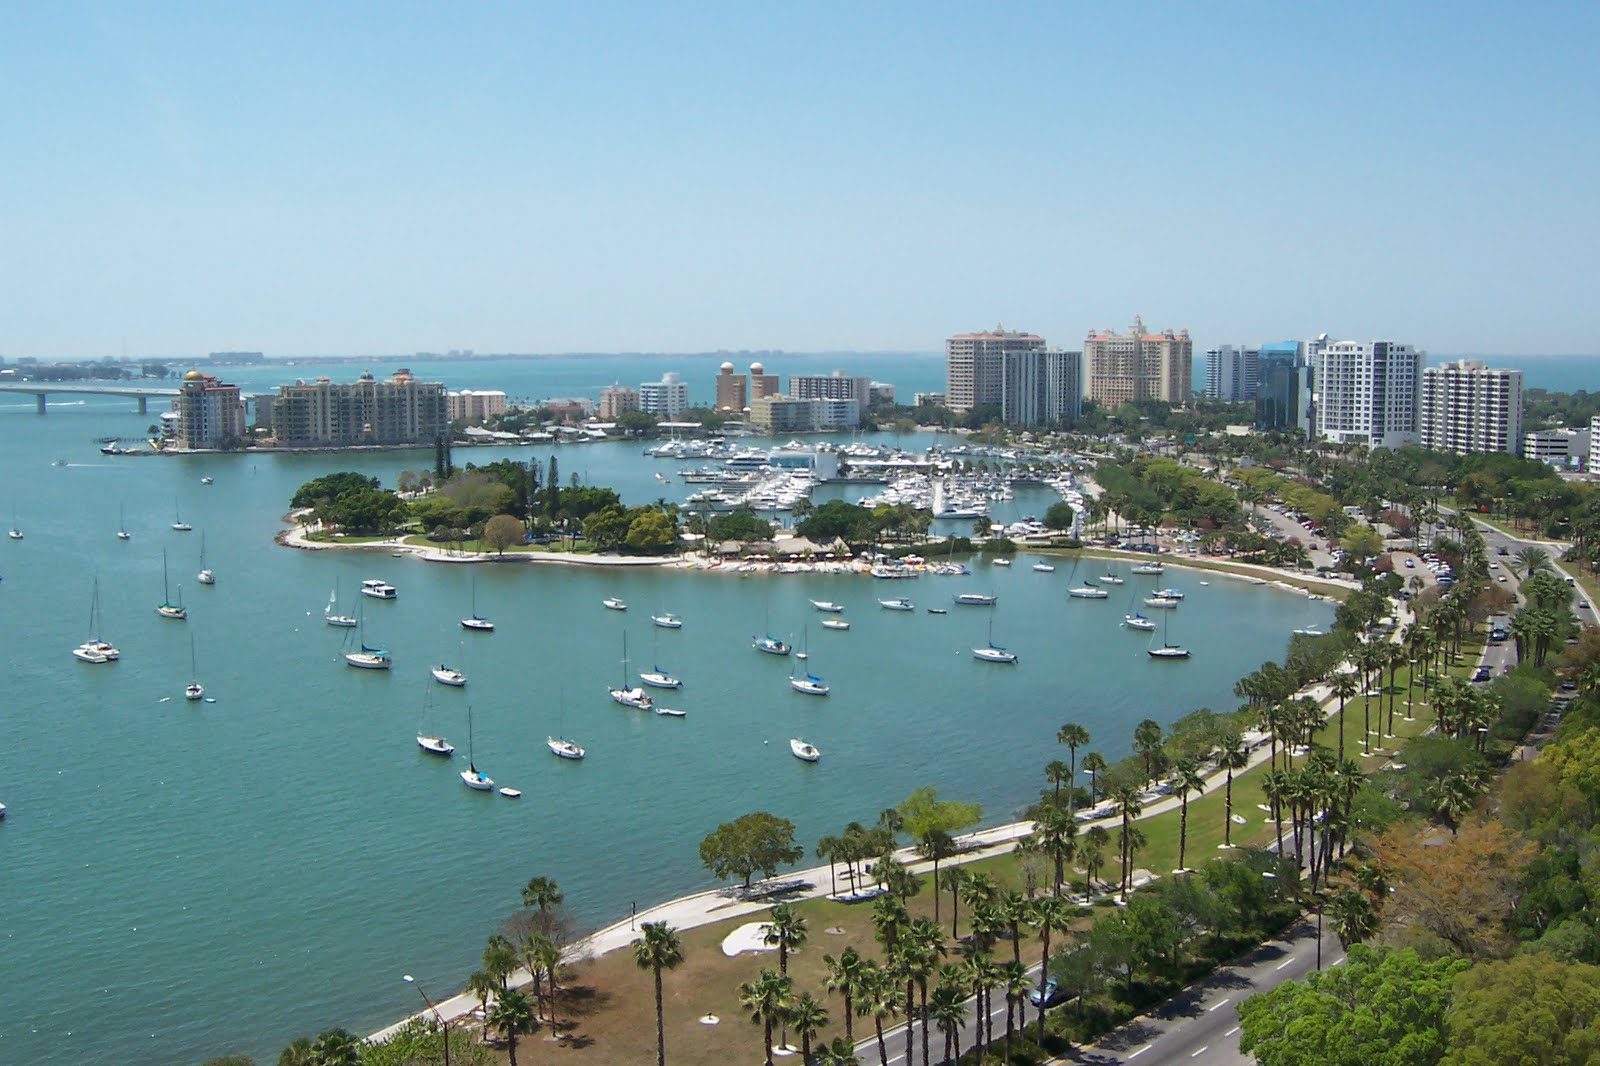 Car Rentals With Debit Cards Orlando Florida Holiday Accommodation Rental Homes – Apartments ...